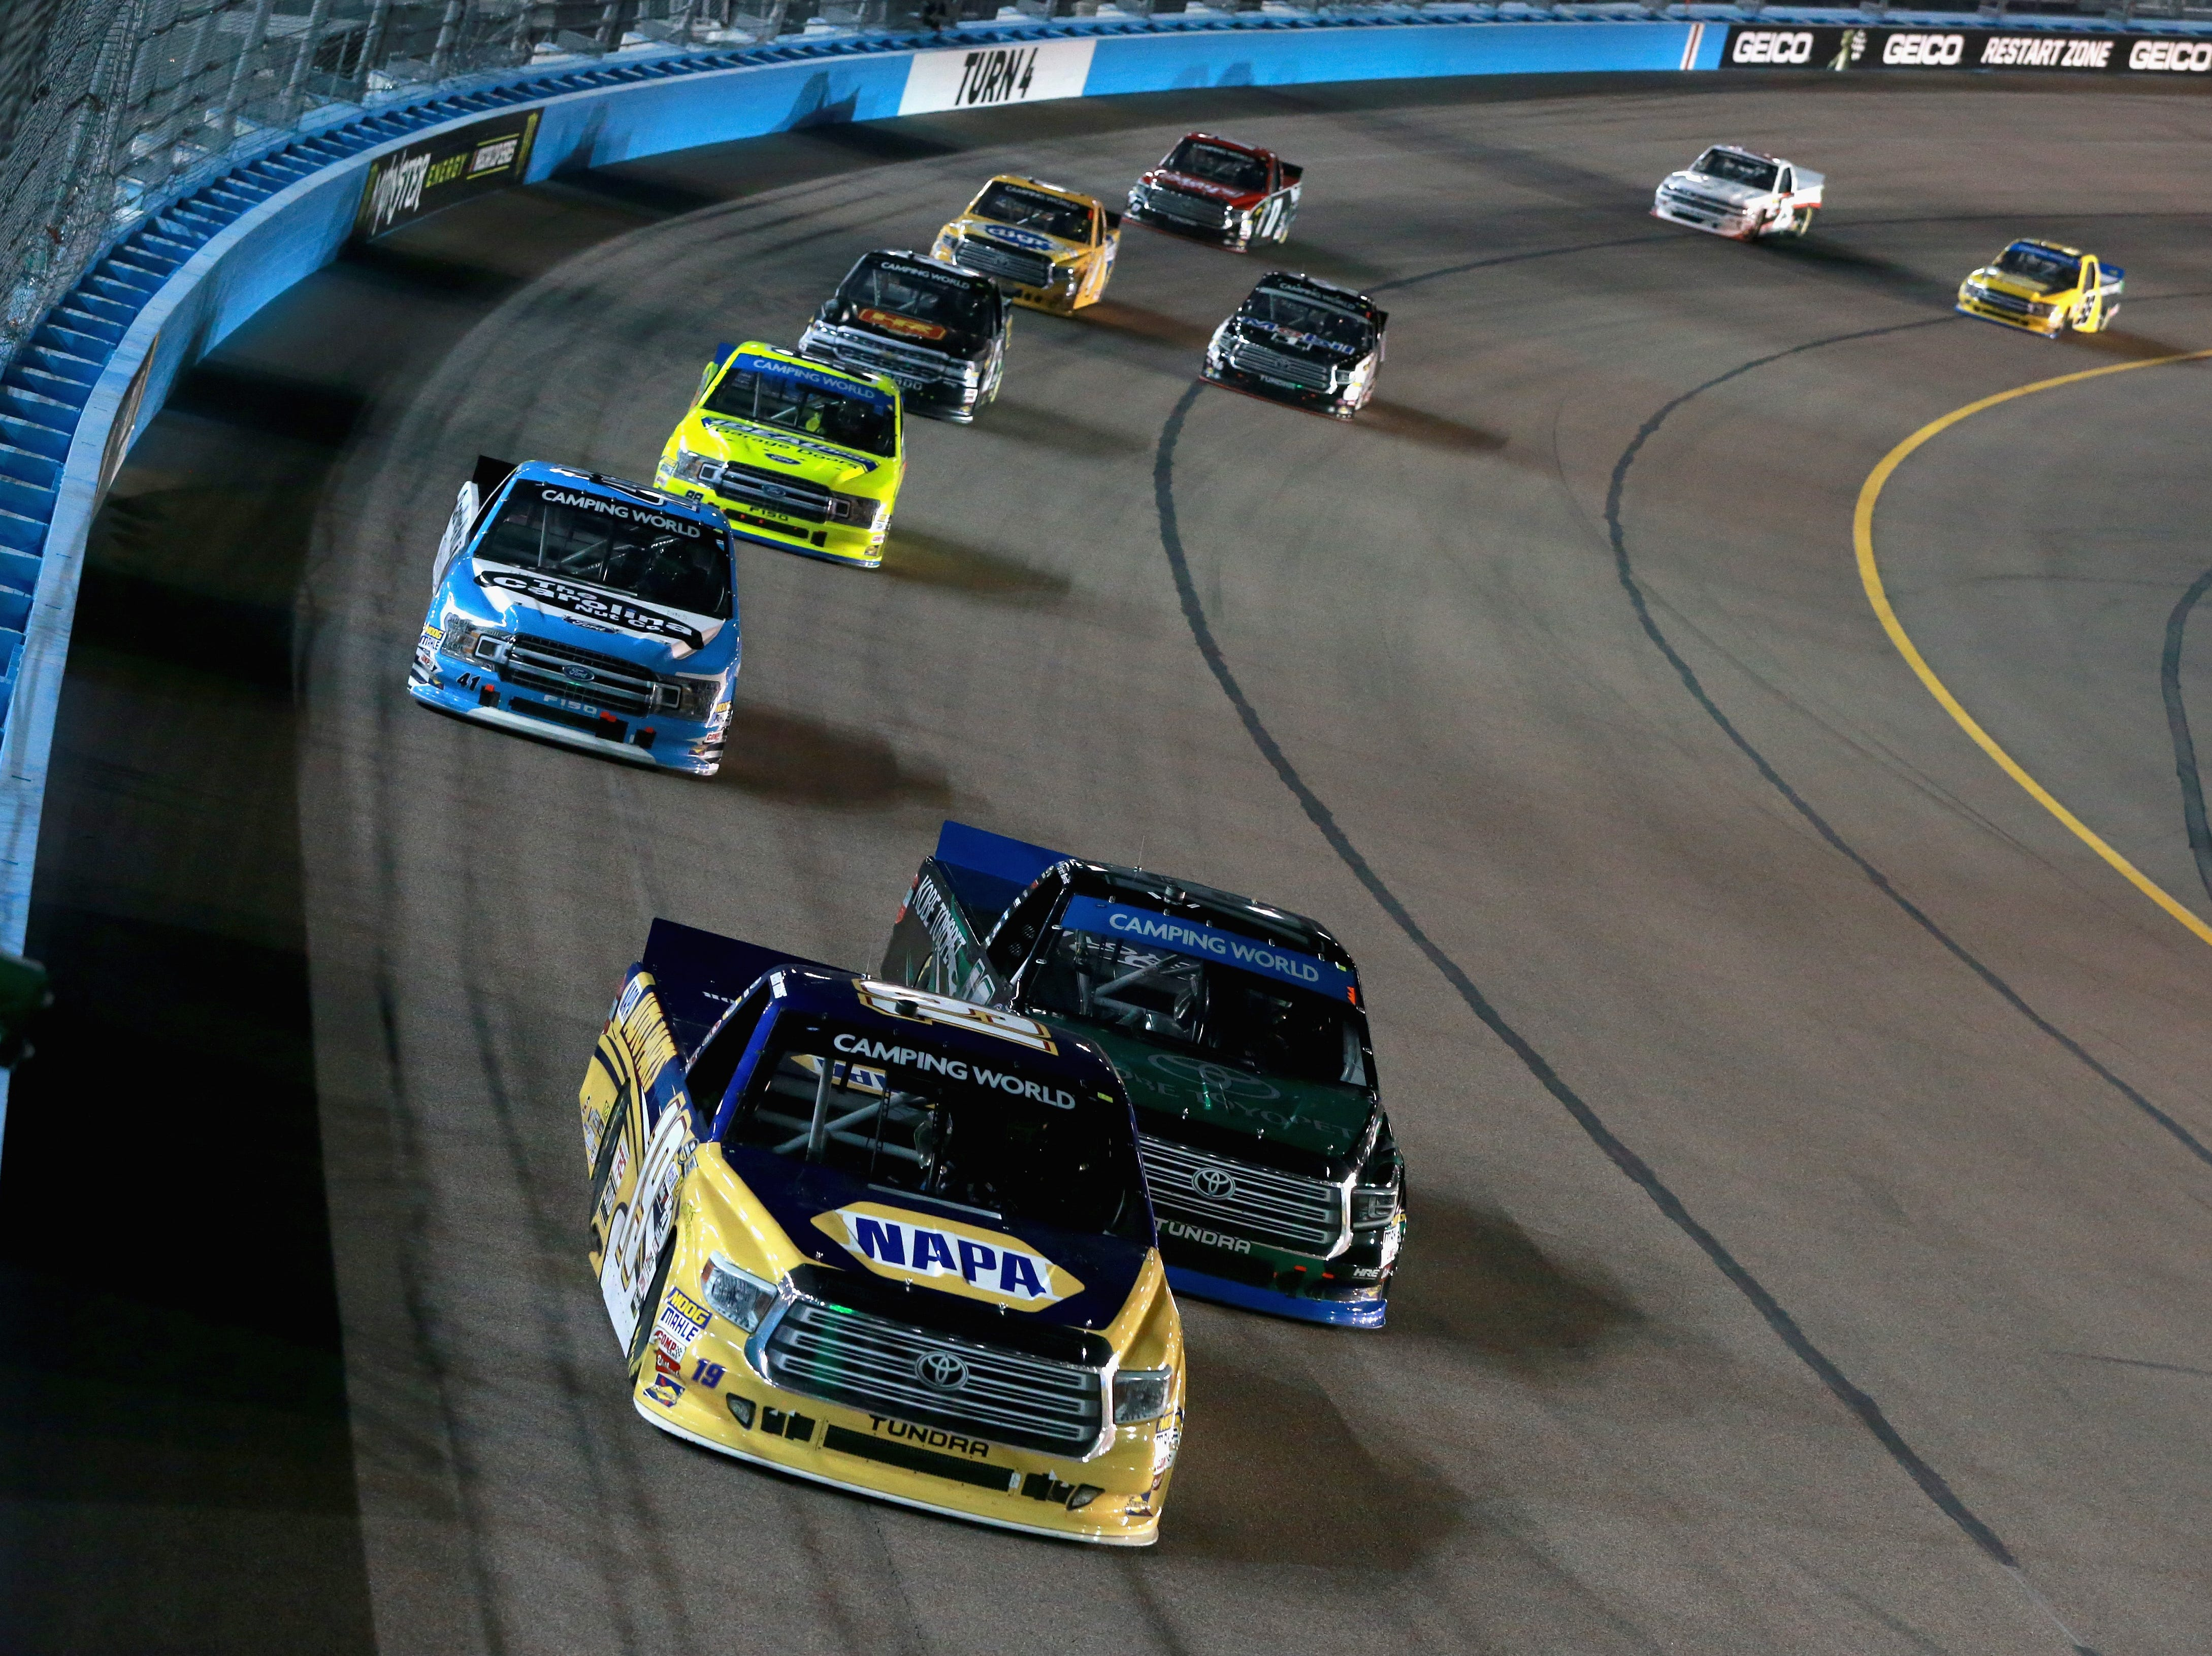 PHOENIX, AZ - NOVEMBER 09:  Derek Kraus, driver of the #19 NAPA Auto Parts Toyota, leads a pack of trucks during the NASCAR Camping World Truck Series Lucas Oil 150 at ISM Raceway on November 9, 2018 in Phoenix, Arizona.  (Photo by Sean Gardner/Getty Images)